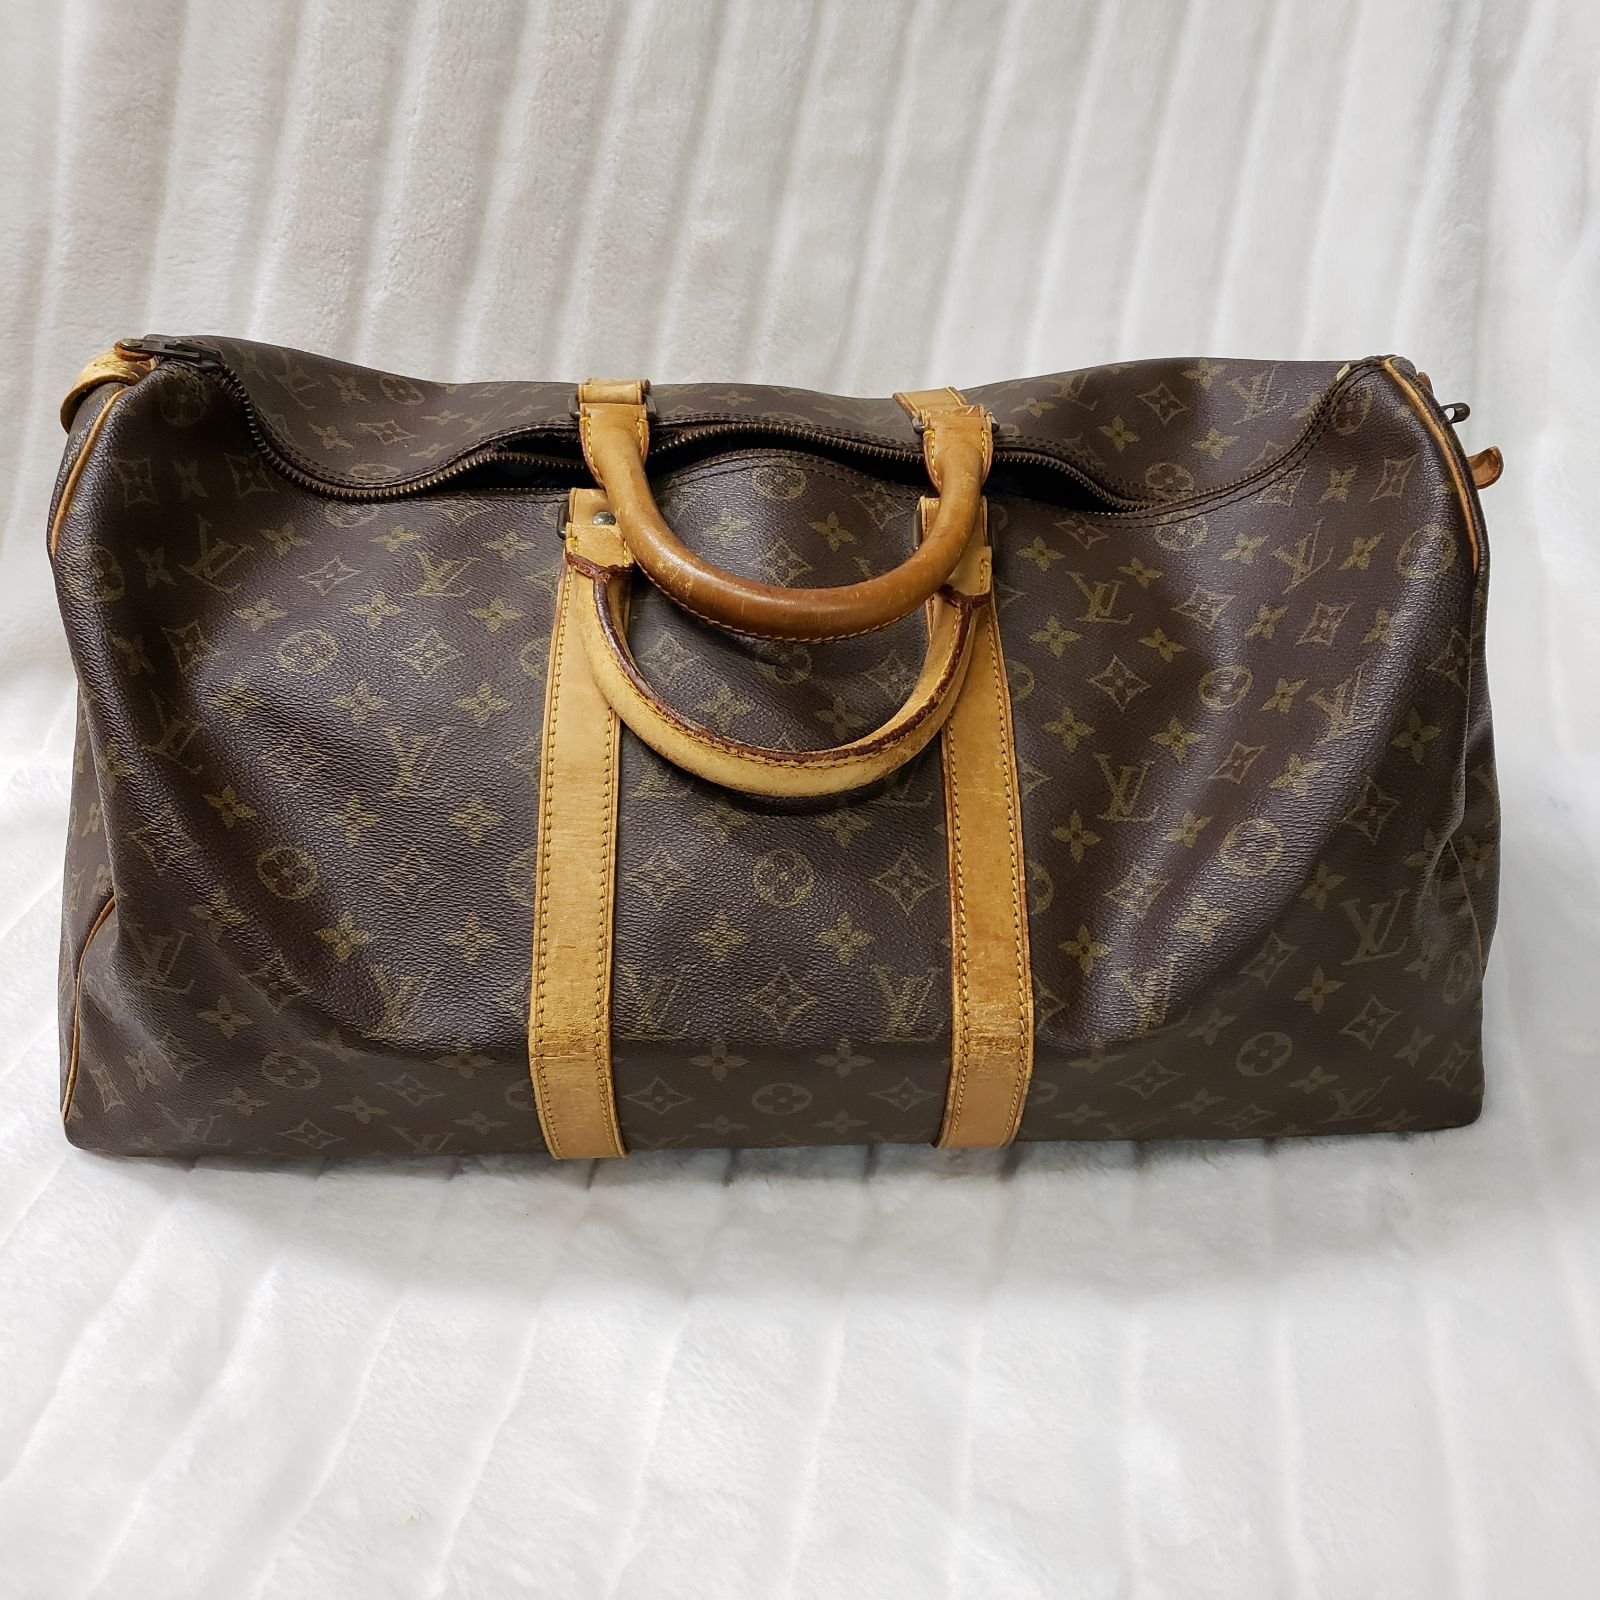 Vintage Louis Vuitton Keepall 50 From 1982 Canvas In Great Condition Some Cracking In The Leath Louis Vuitton Keepall 50 Louis Vuitton Louis Vuitton Luggage